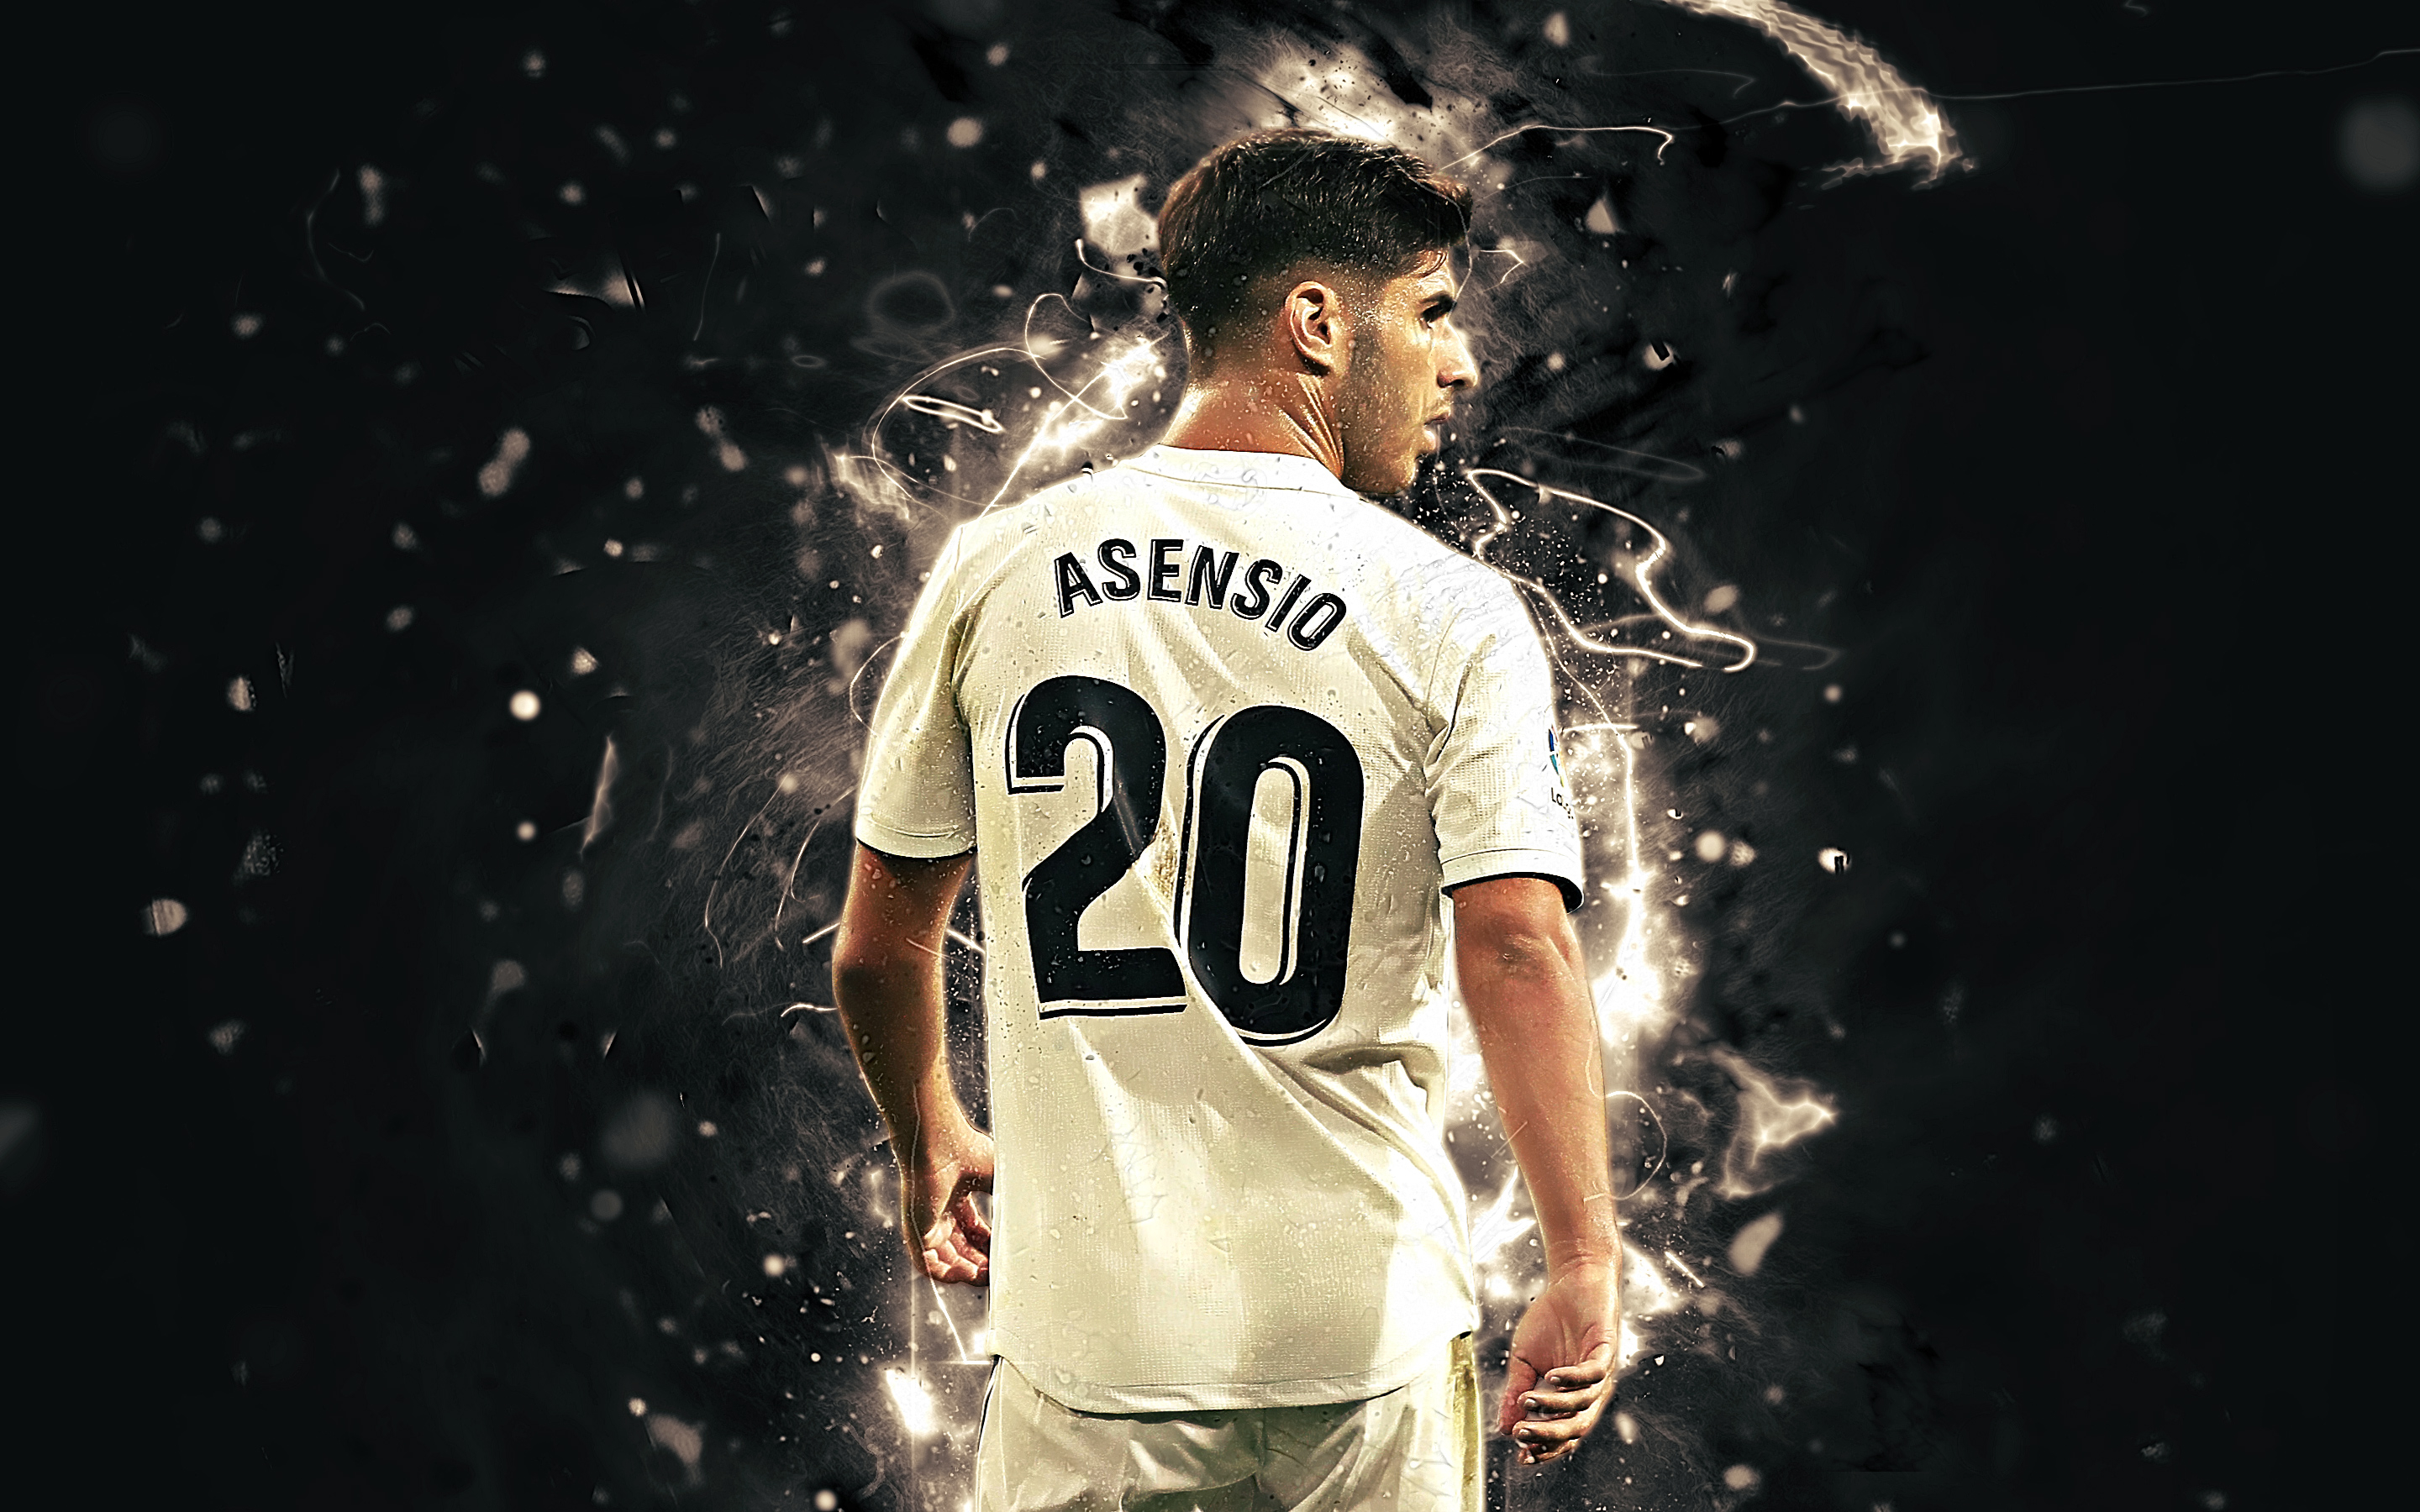 2880x1800 - Marco Asensio Wallpapers 10